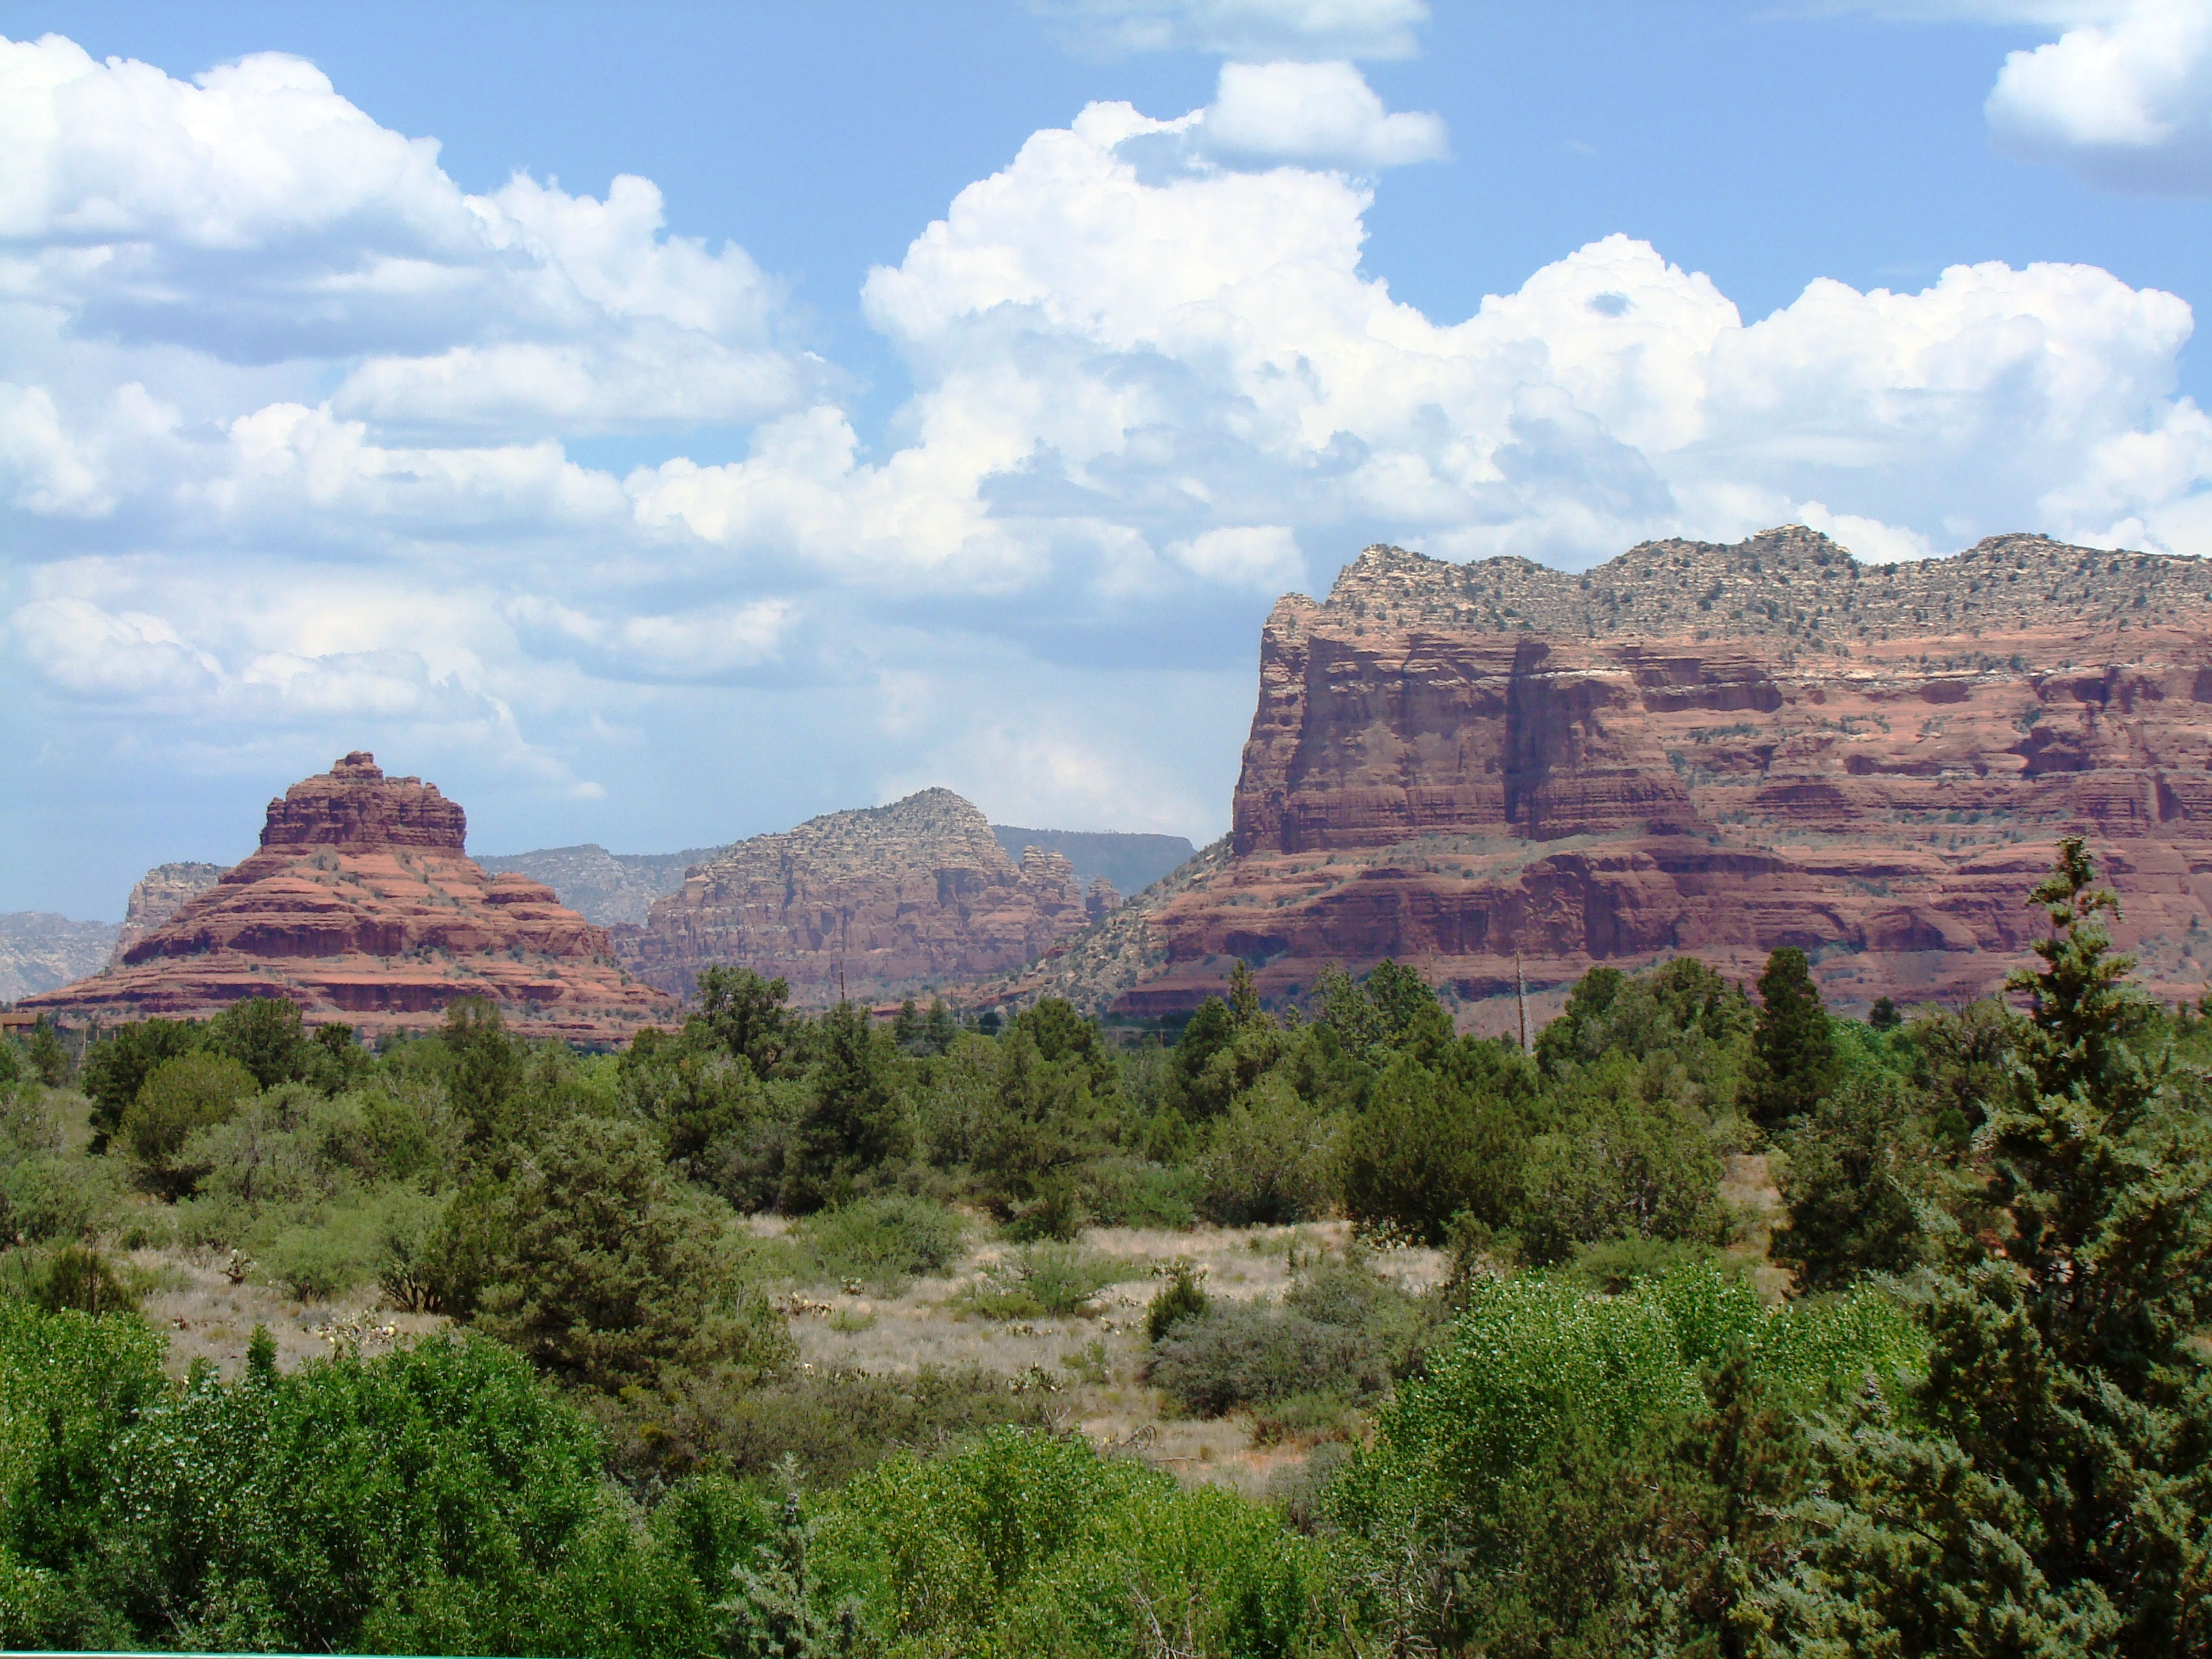 sedona chat sites Everything's included by lennar, the leading homebuilder of new homes for sale in the nation's most desirable real estate markets.